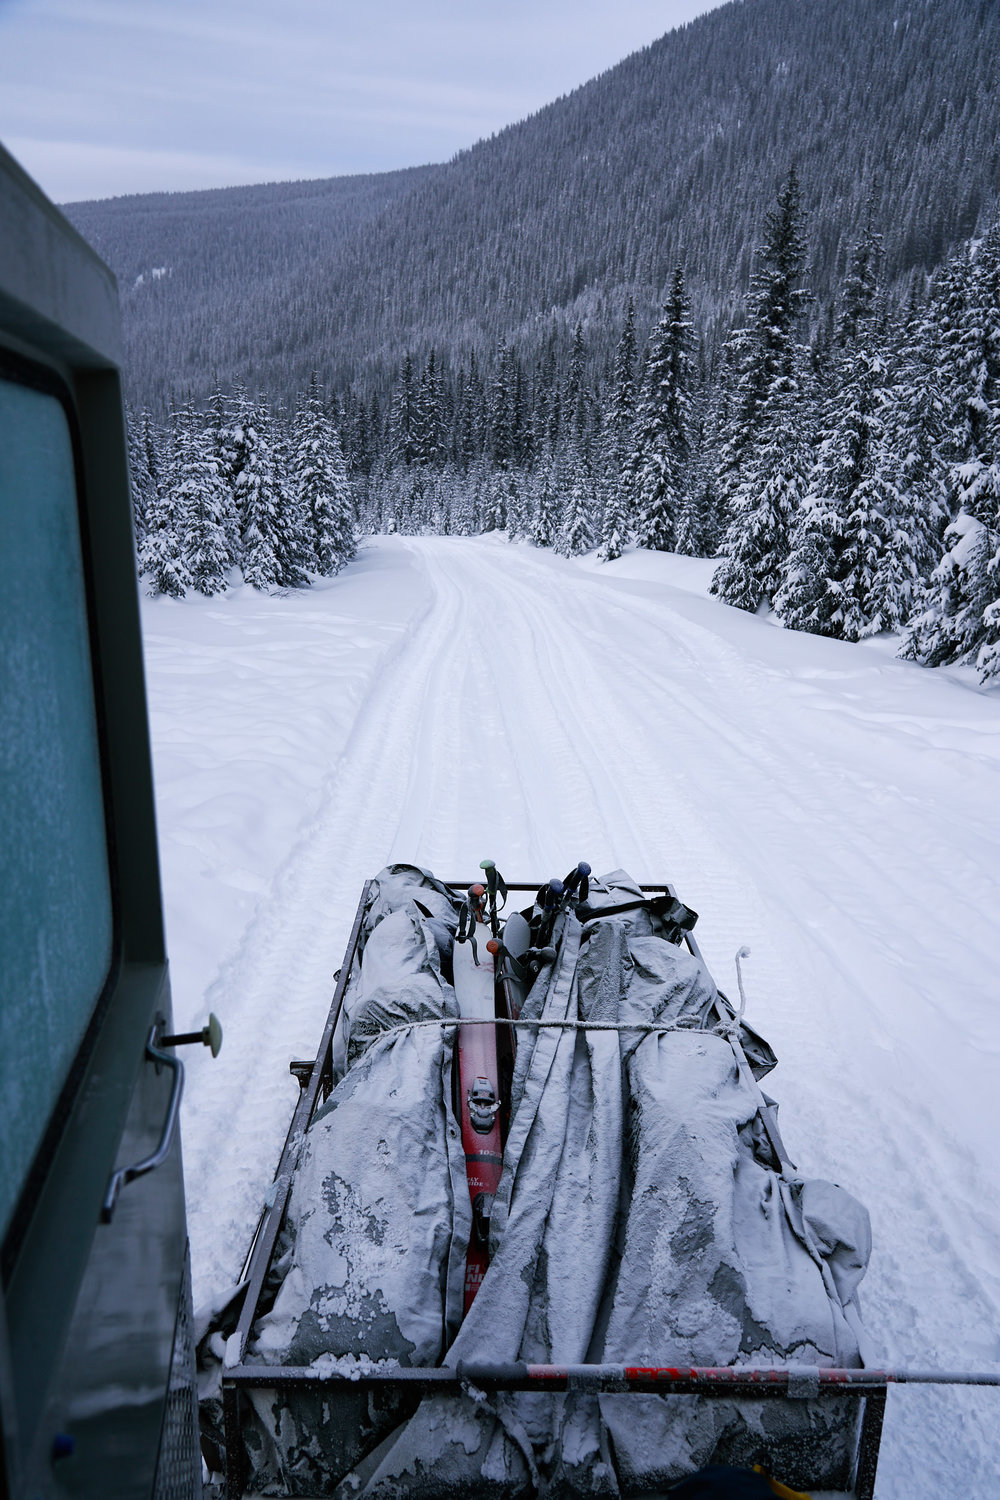 We loaded up the gear in the trailer and started the 12km drive up the road.